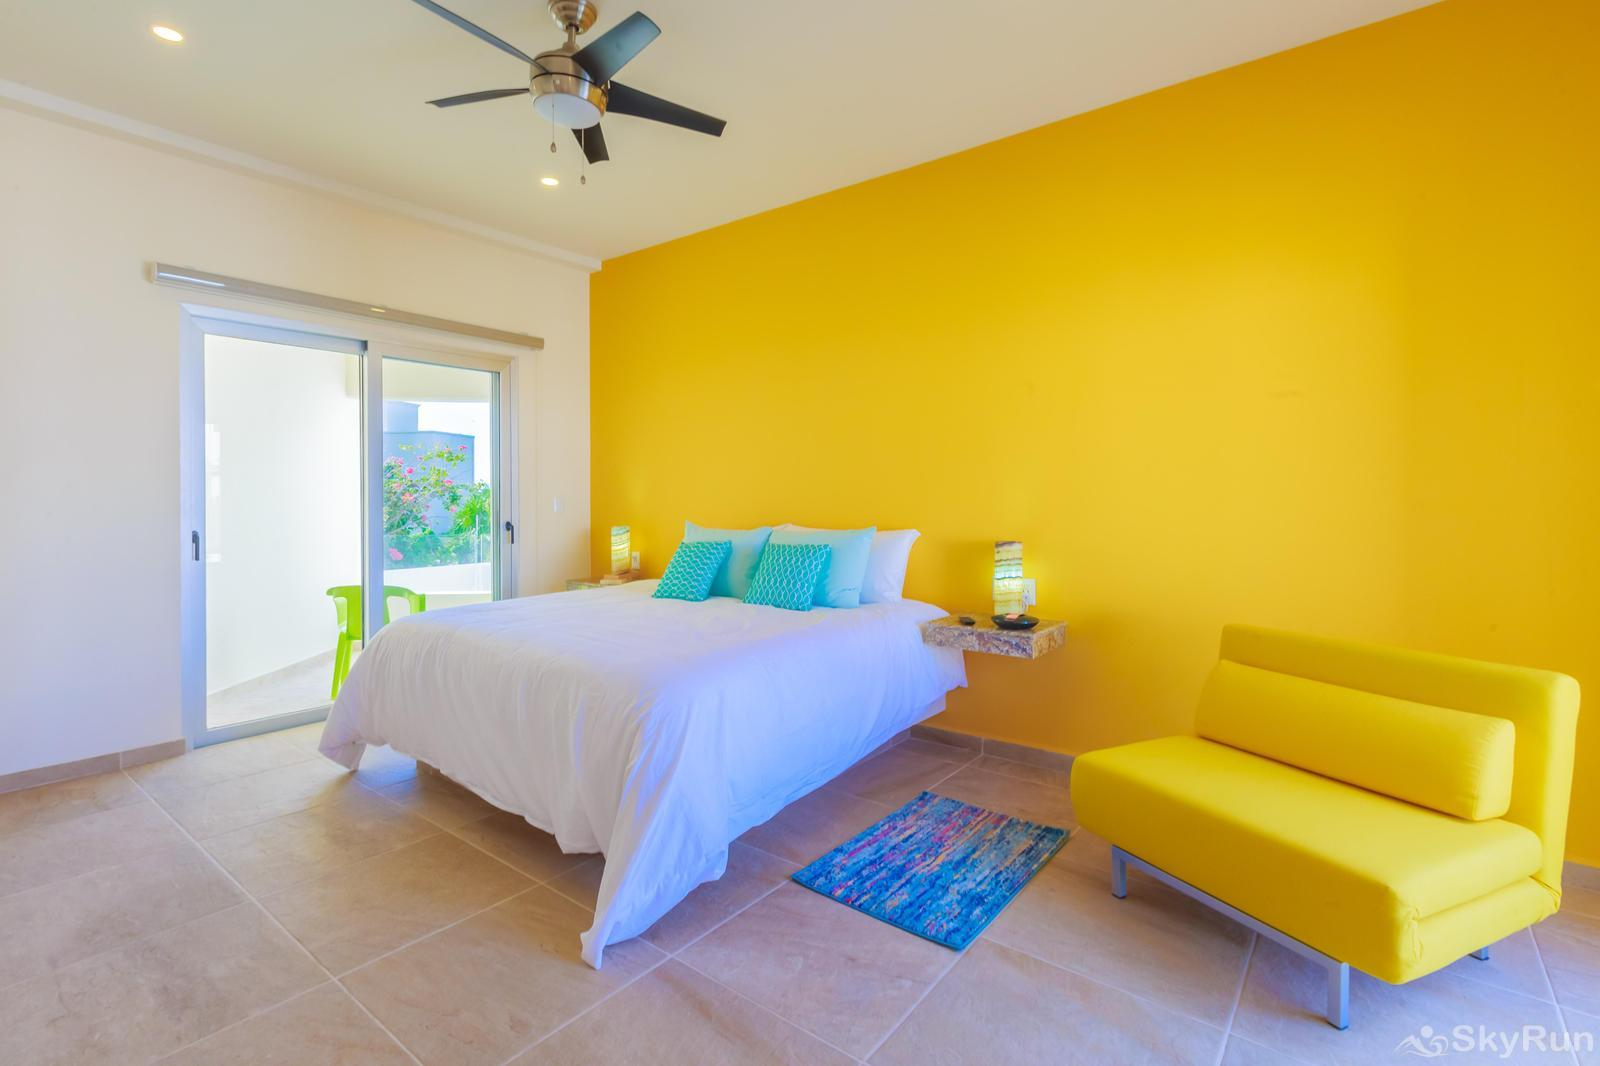 NEW and Unique Residencial Home Prime Location Isla Mujeres Bathroom Master Bedroom